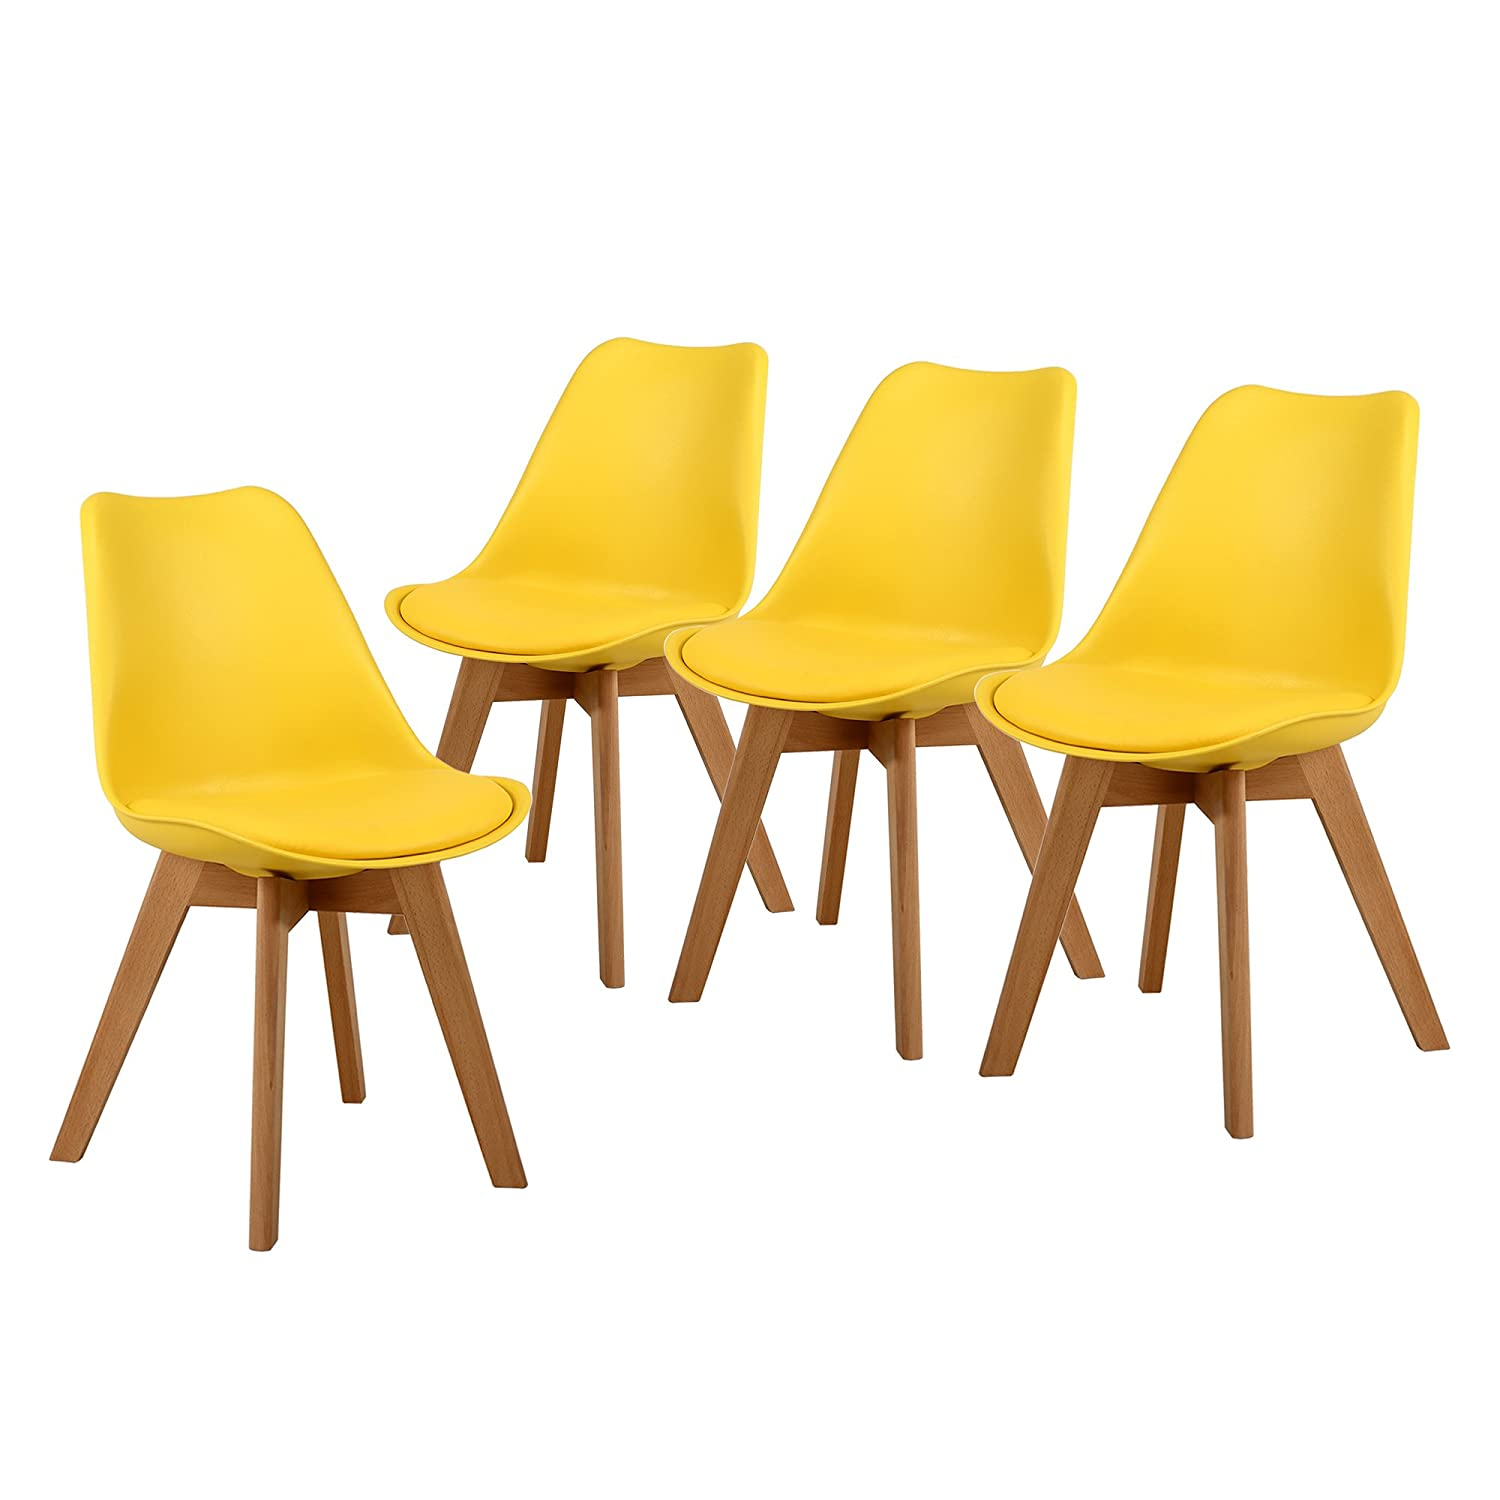 NOBPEINT Eames-Style Mid Century Dining Chairs,Set of 4 Yellow